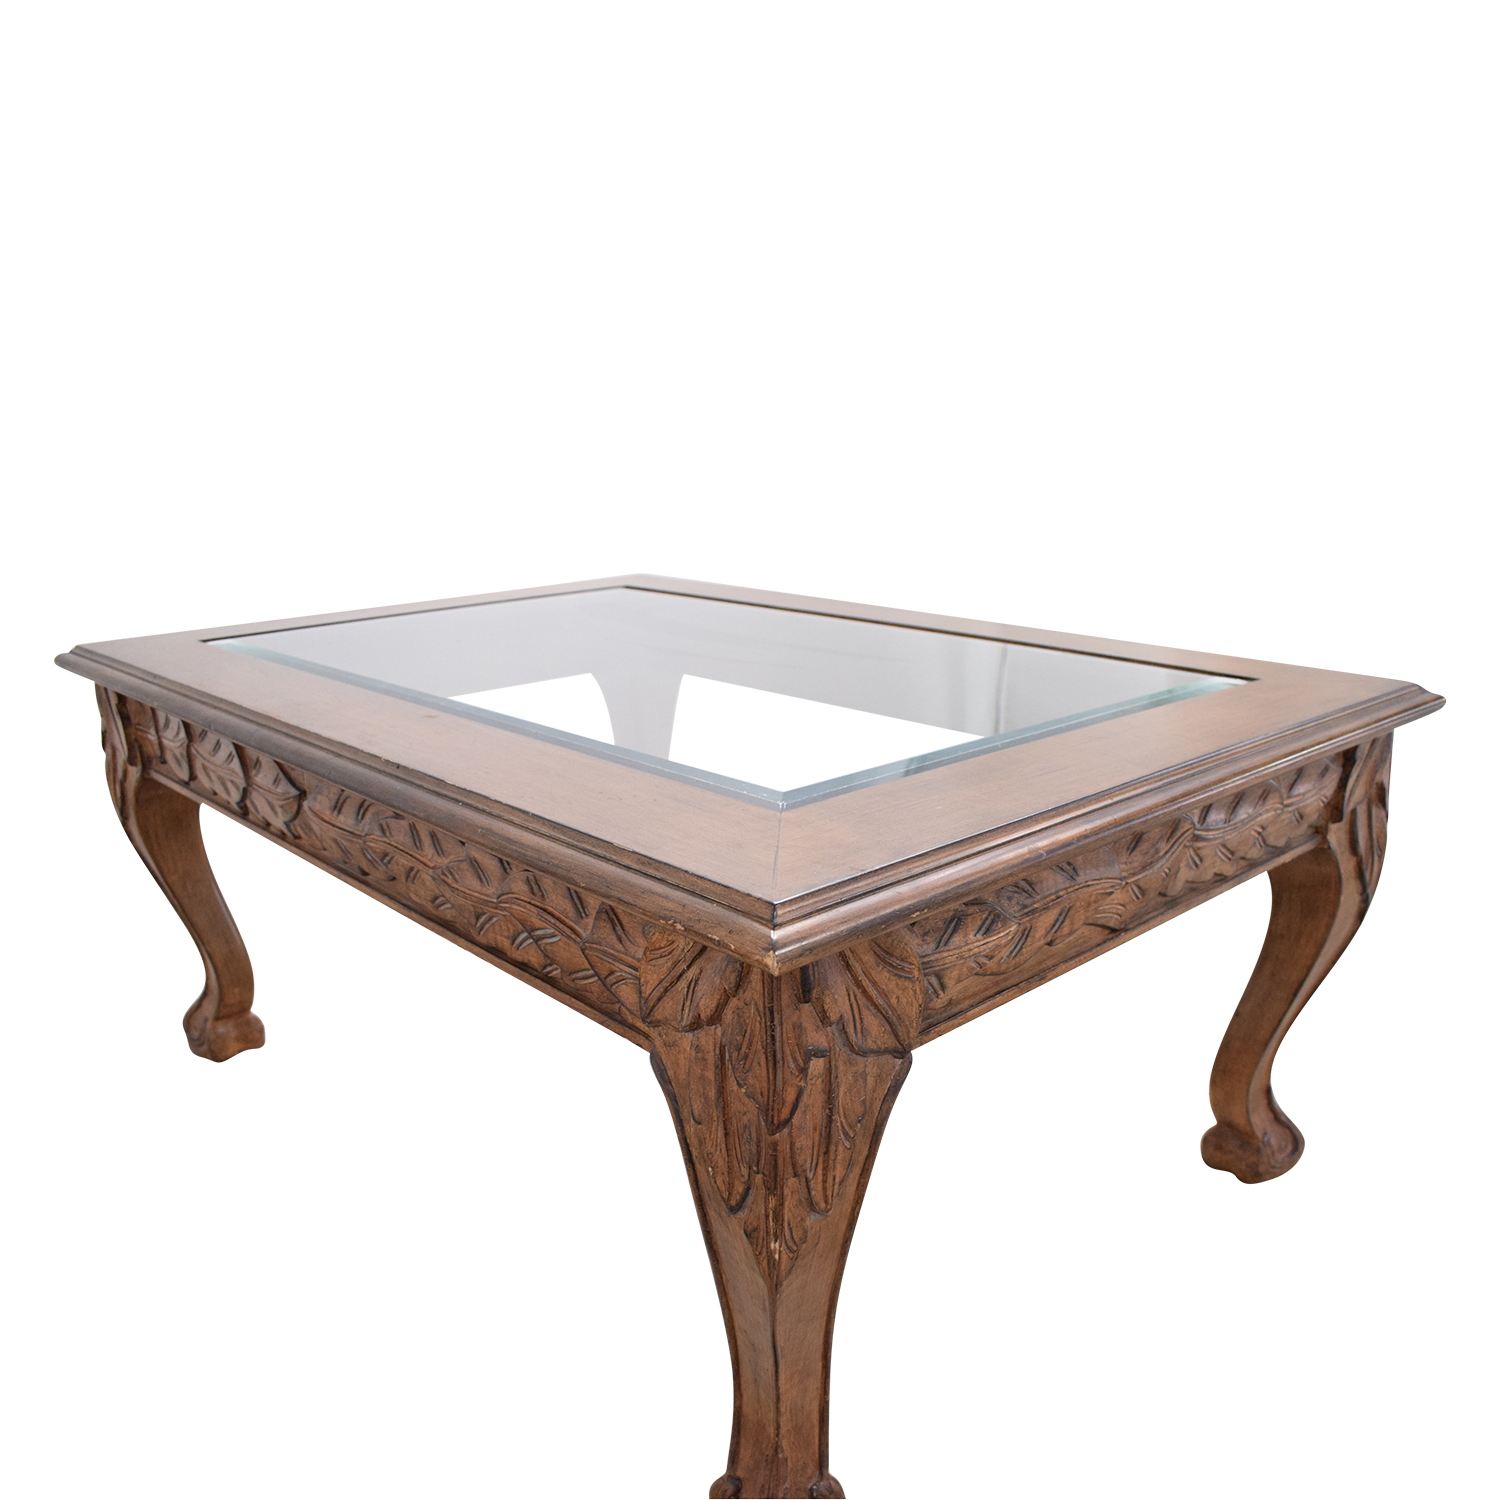 - 89% OFF - Traditional Glass Top Coffee Table / Tables